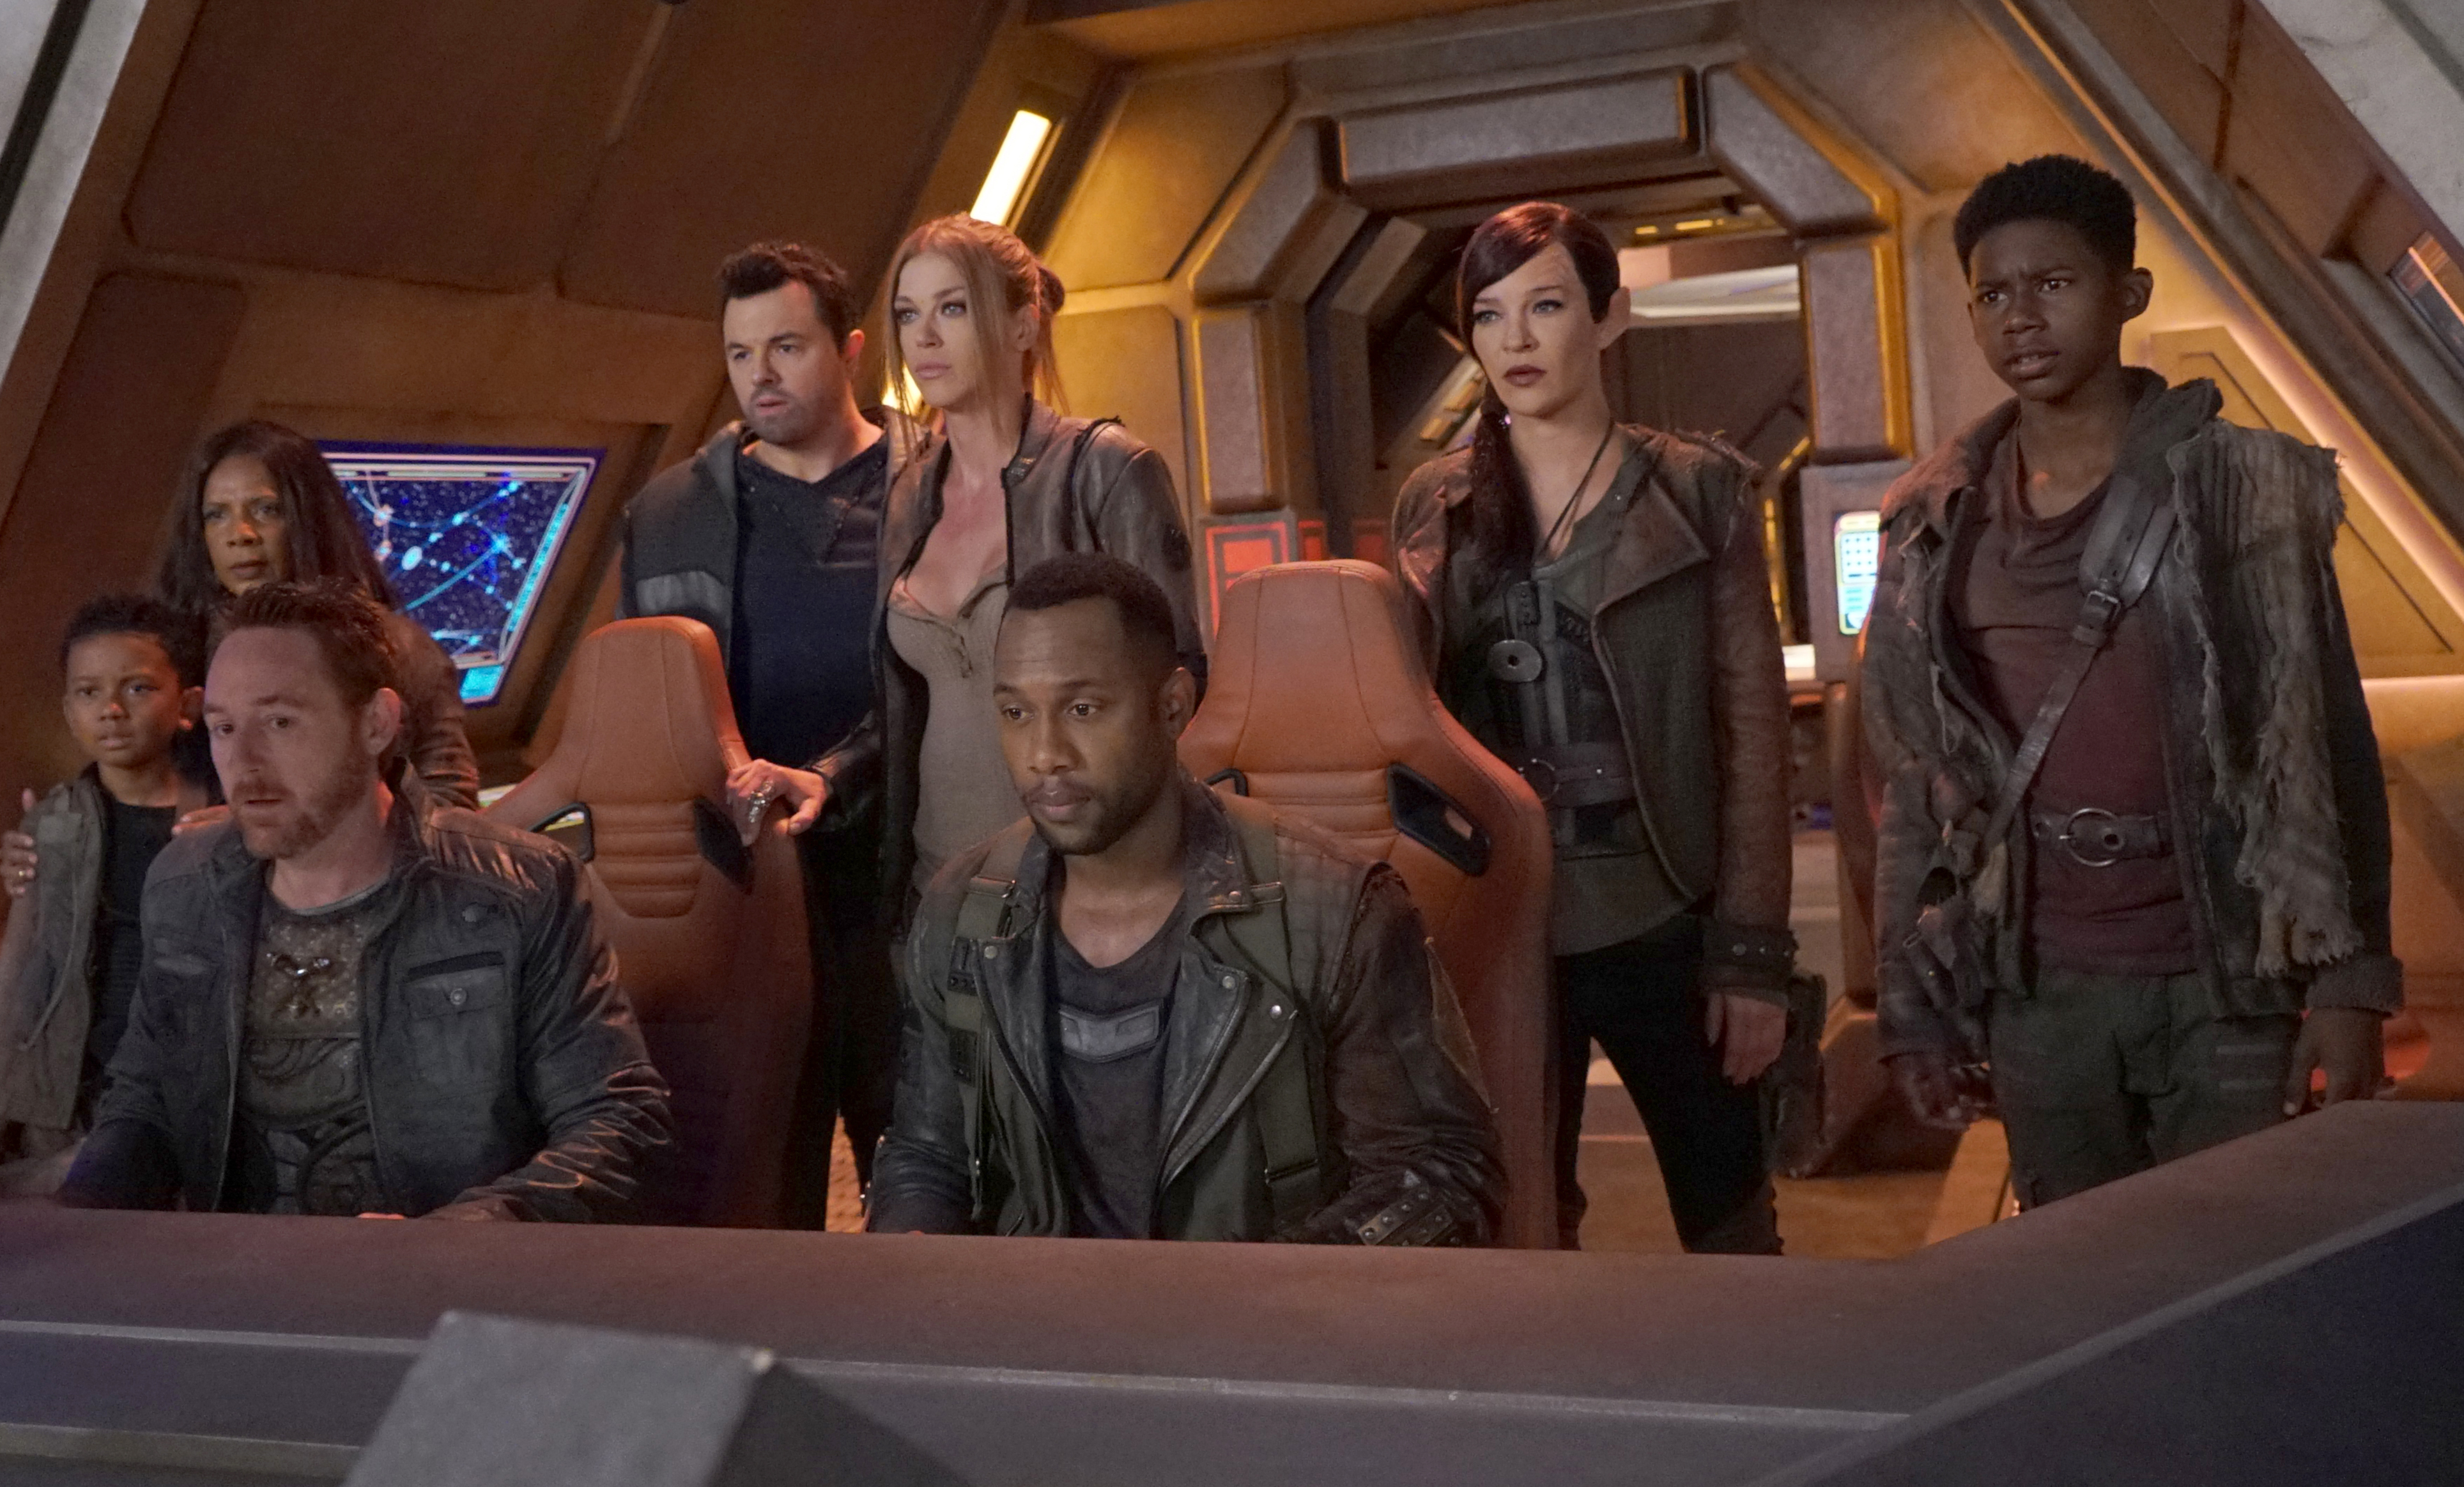 The Orville' Goes Out with a Bang in the Season 2 Finale | Space